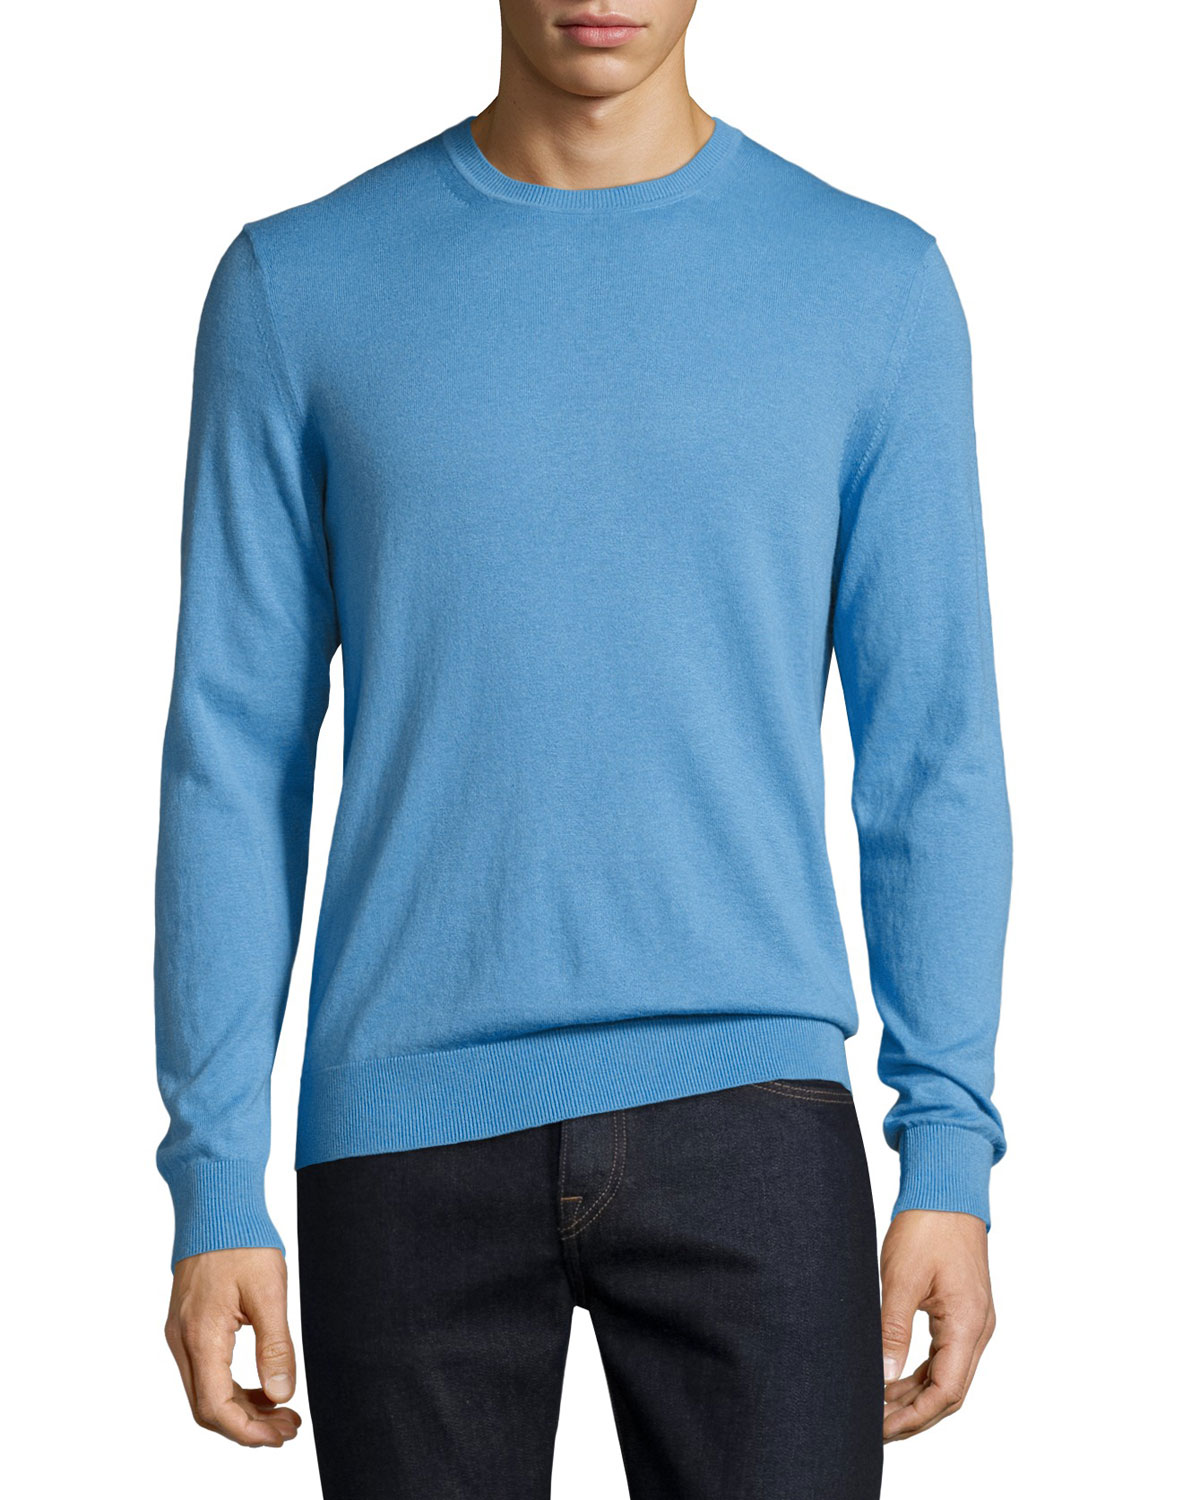 Richmond Check-Patch Cashmere-Blend Sweater, Dusty Blue